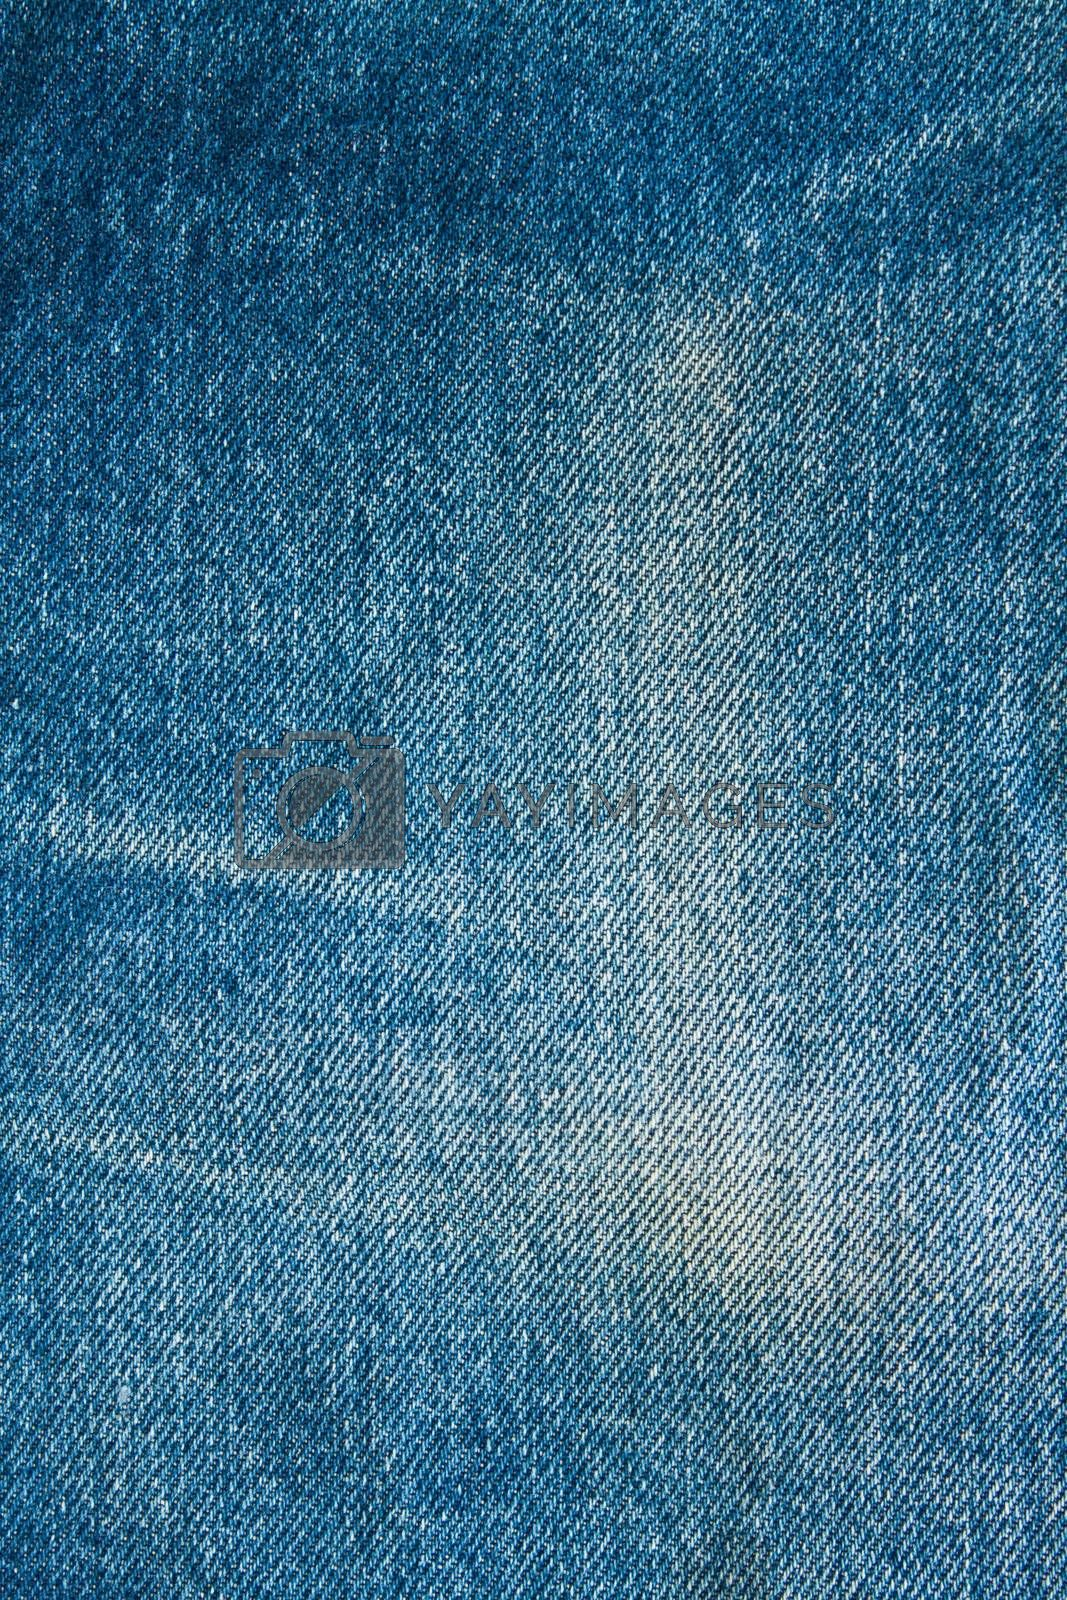 texture of blue modern jeans with pocket, can be used as a background